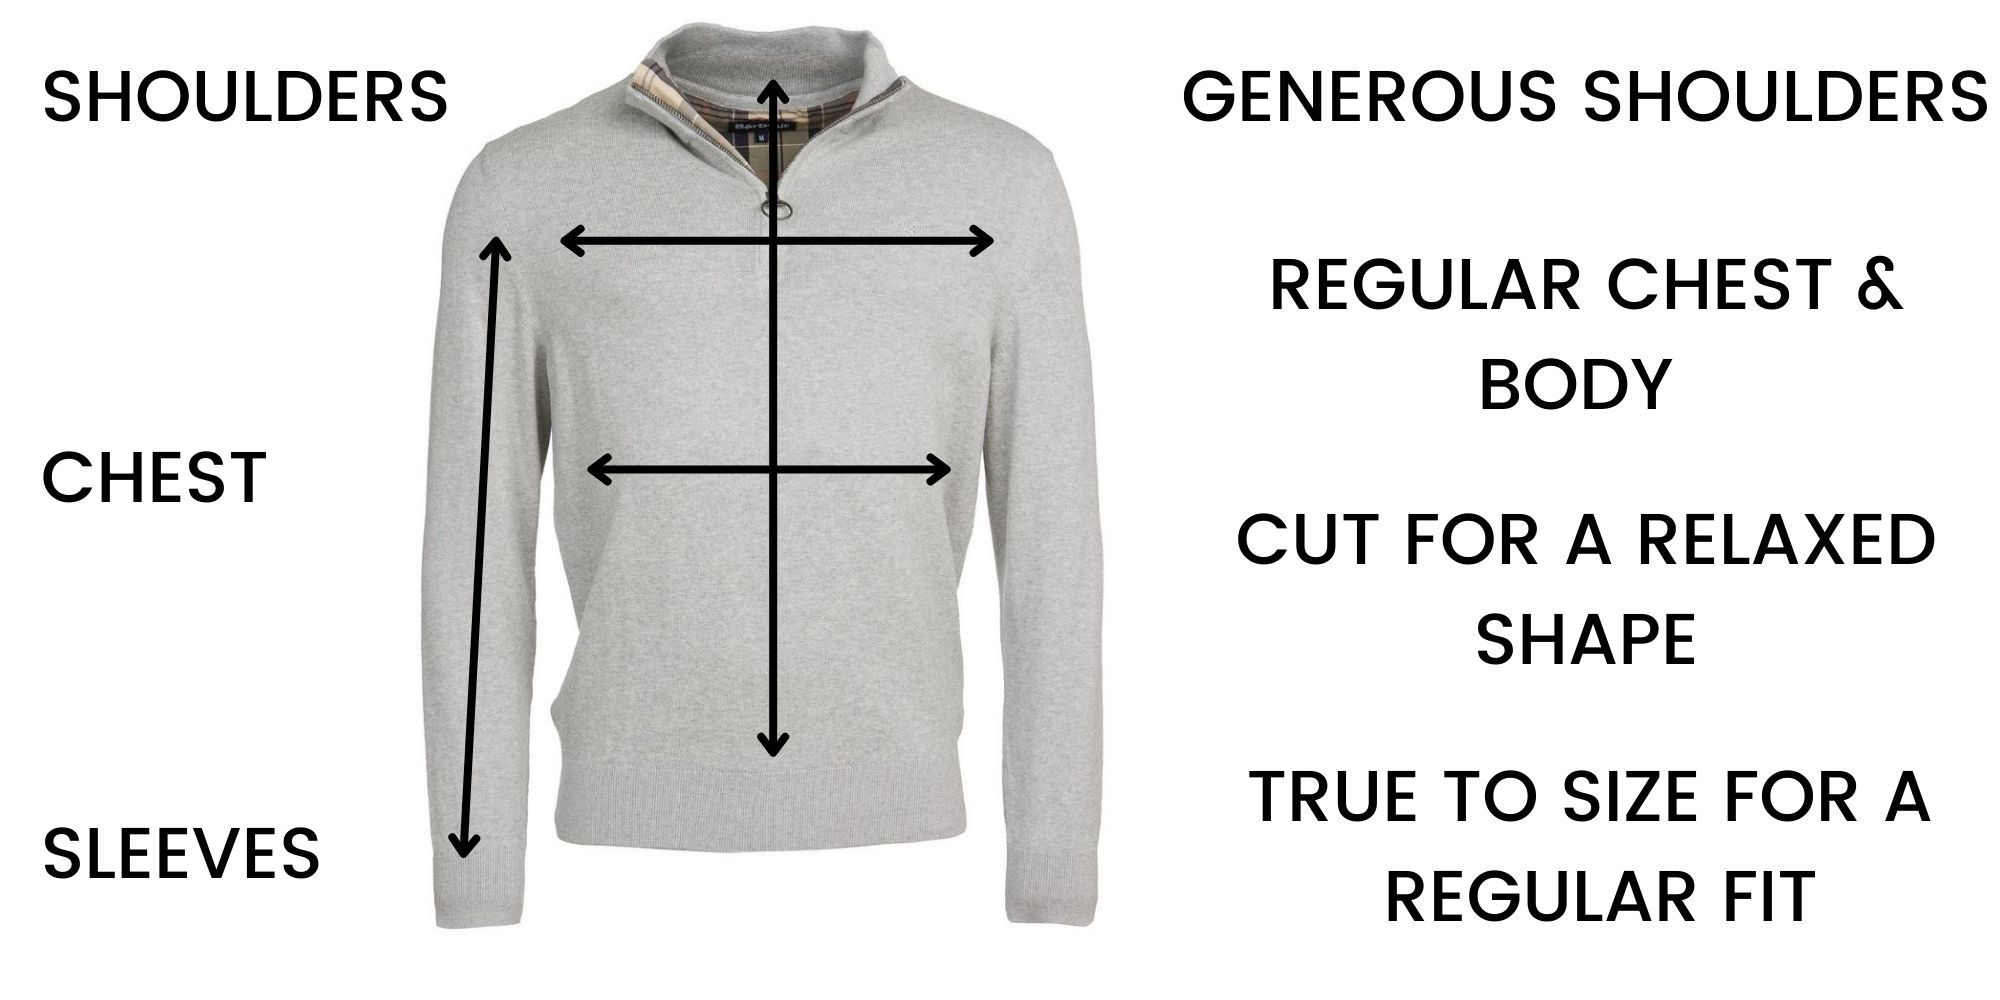 Barbour knitwear Size Guide